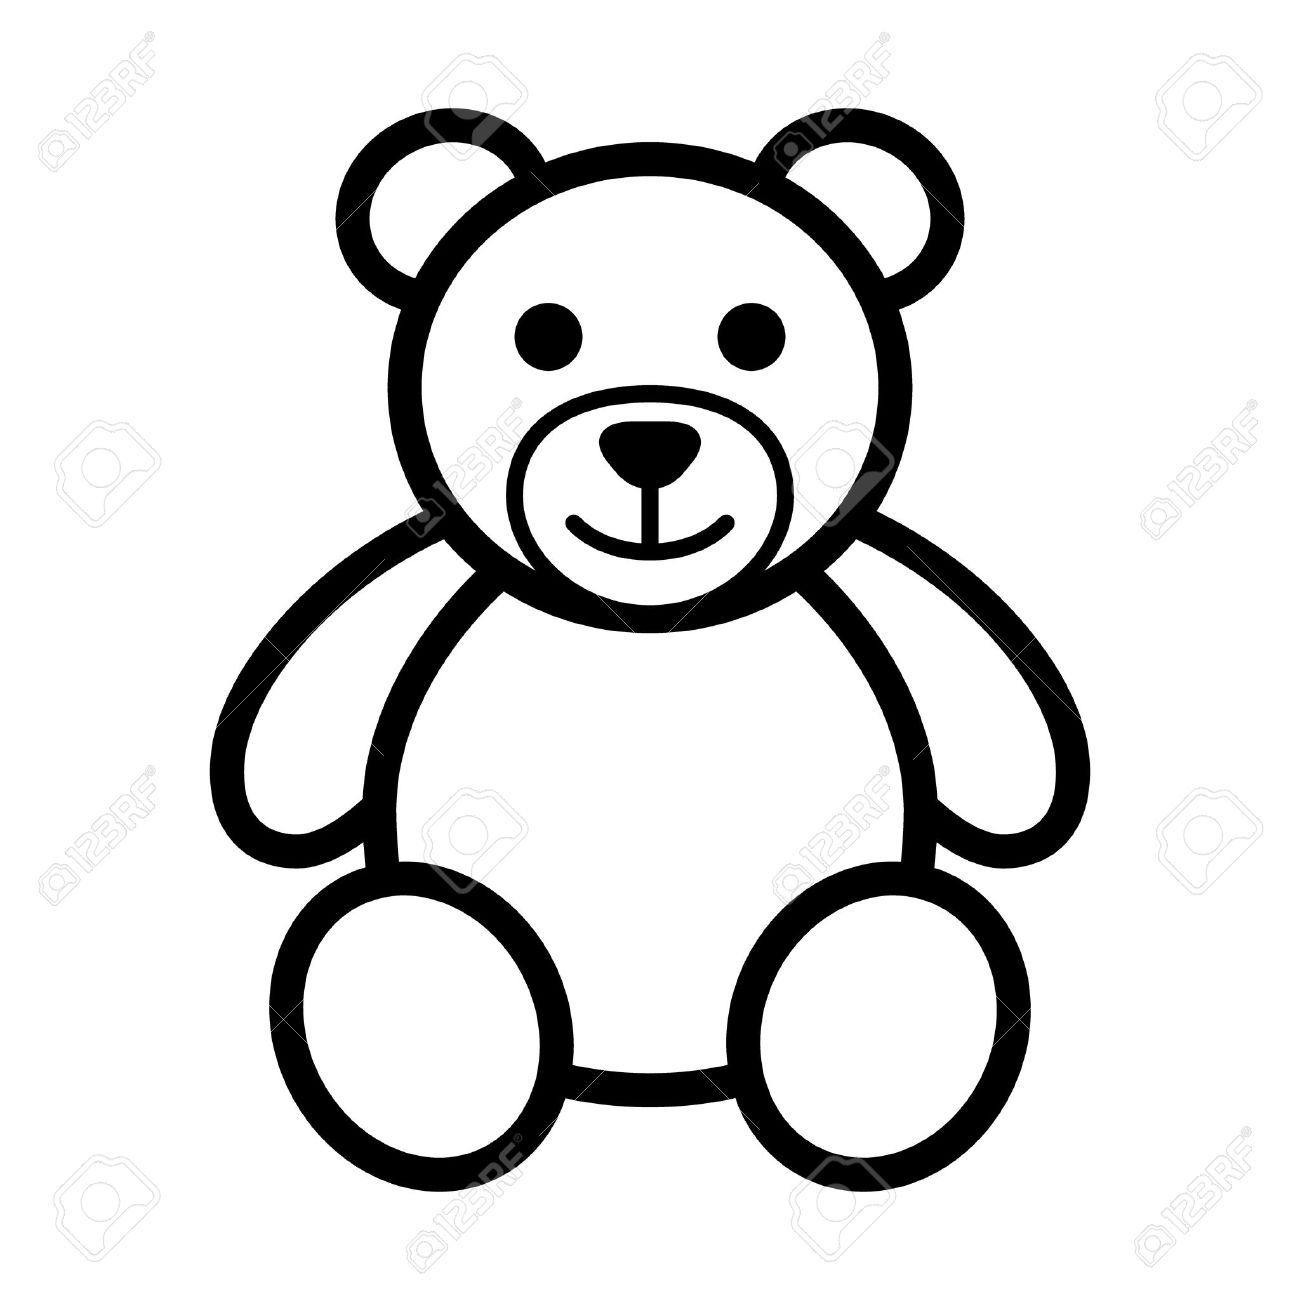 Teddy bear plush toy line art icon for apps and websites - 50016427